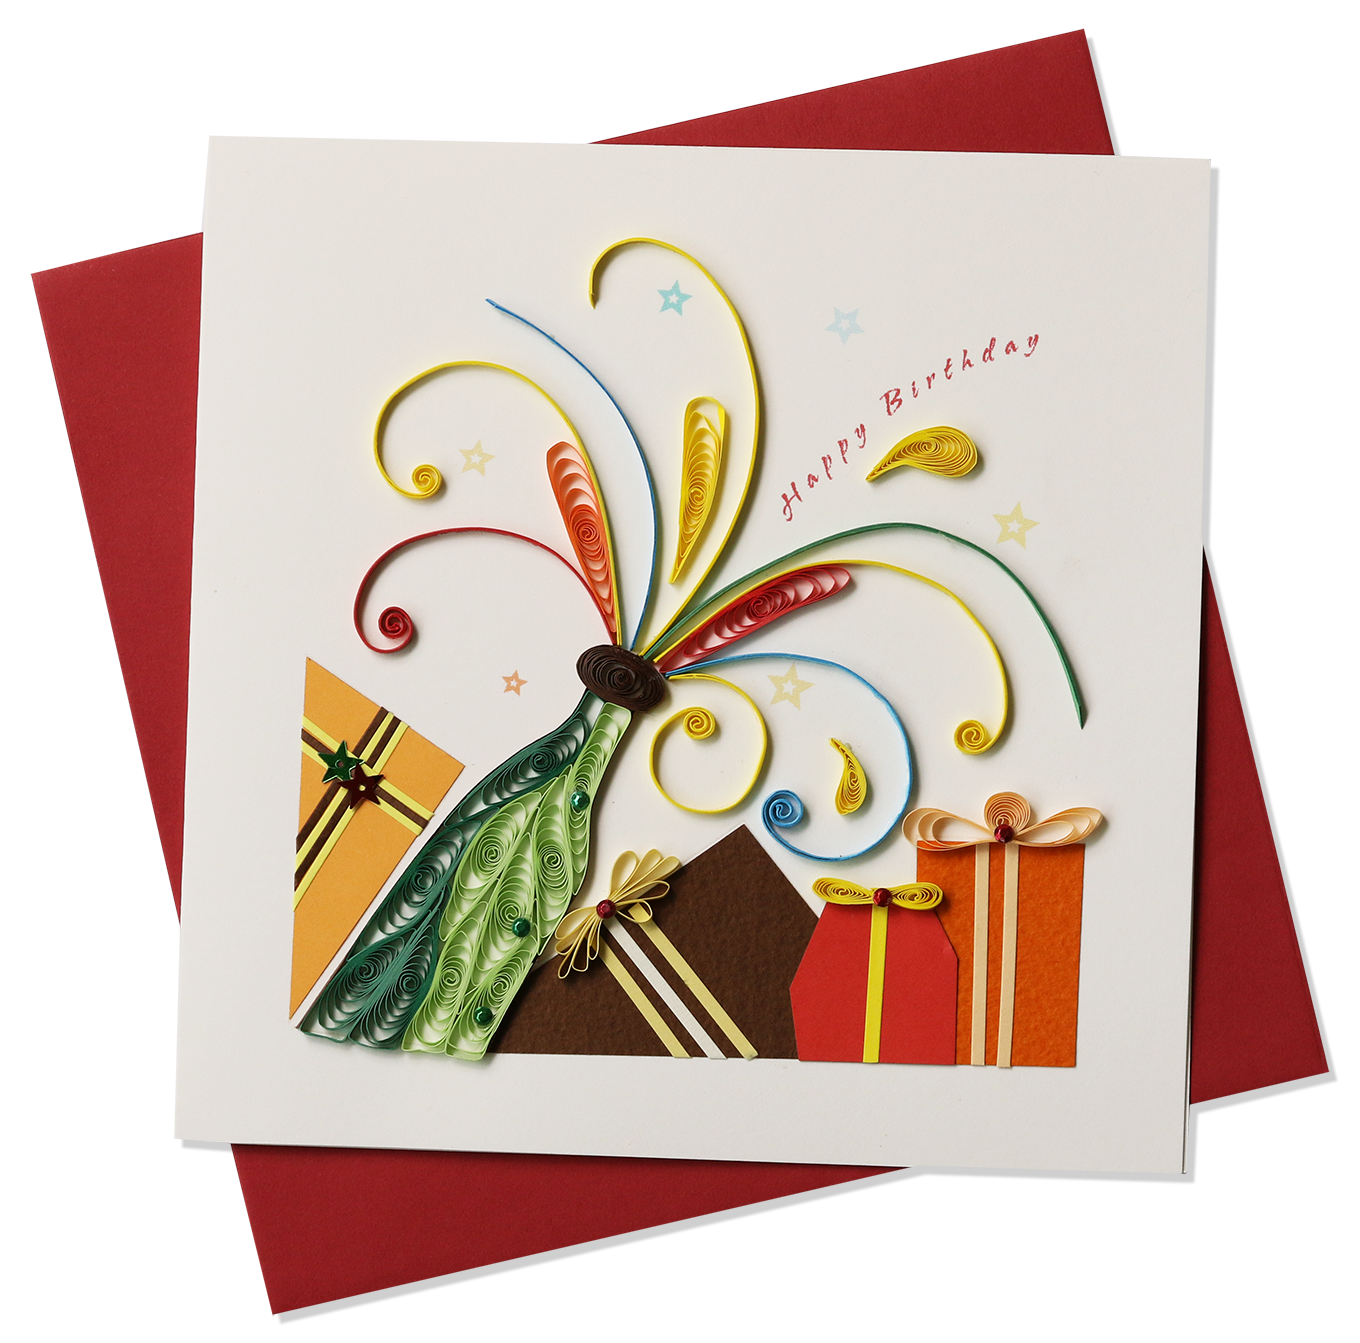 LOUIE Awards – The Artist & The Card 2013 | Quilling Arts - VIET NET | Crafted Gifts By Hand And Heart